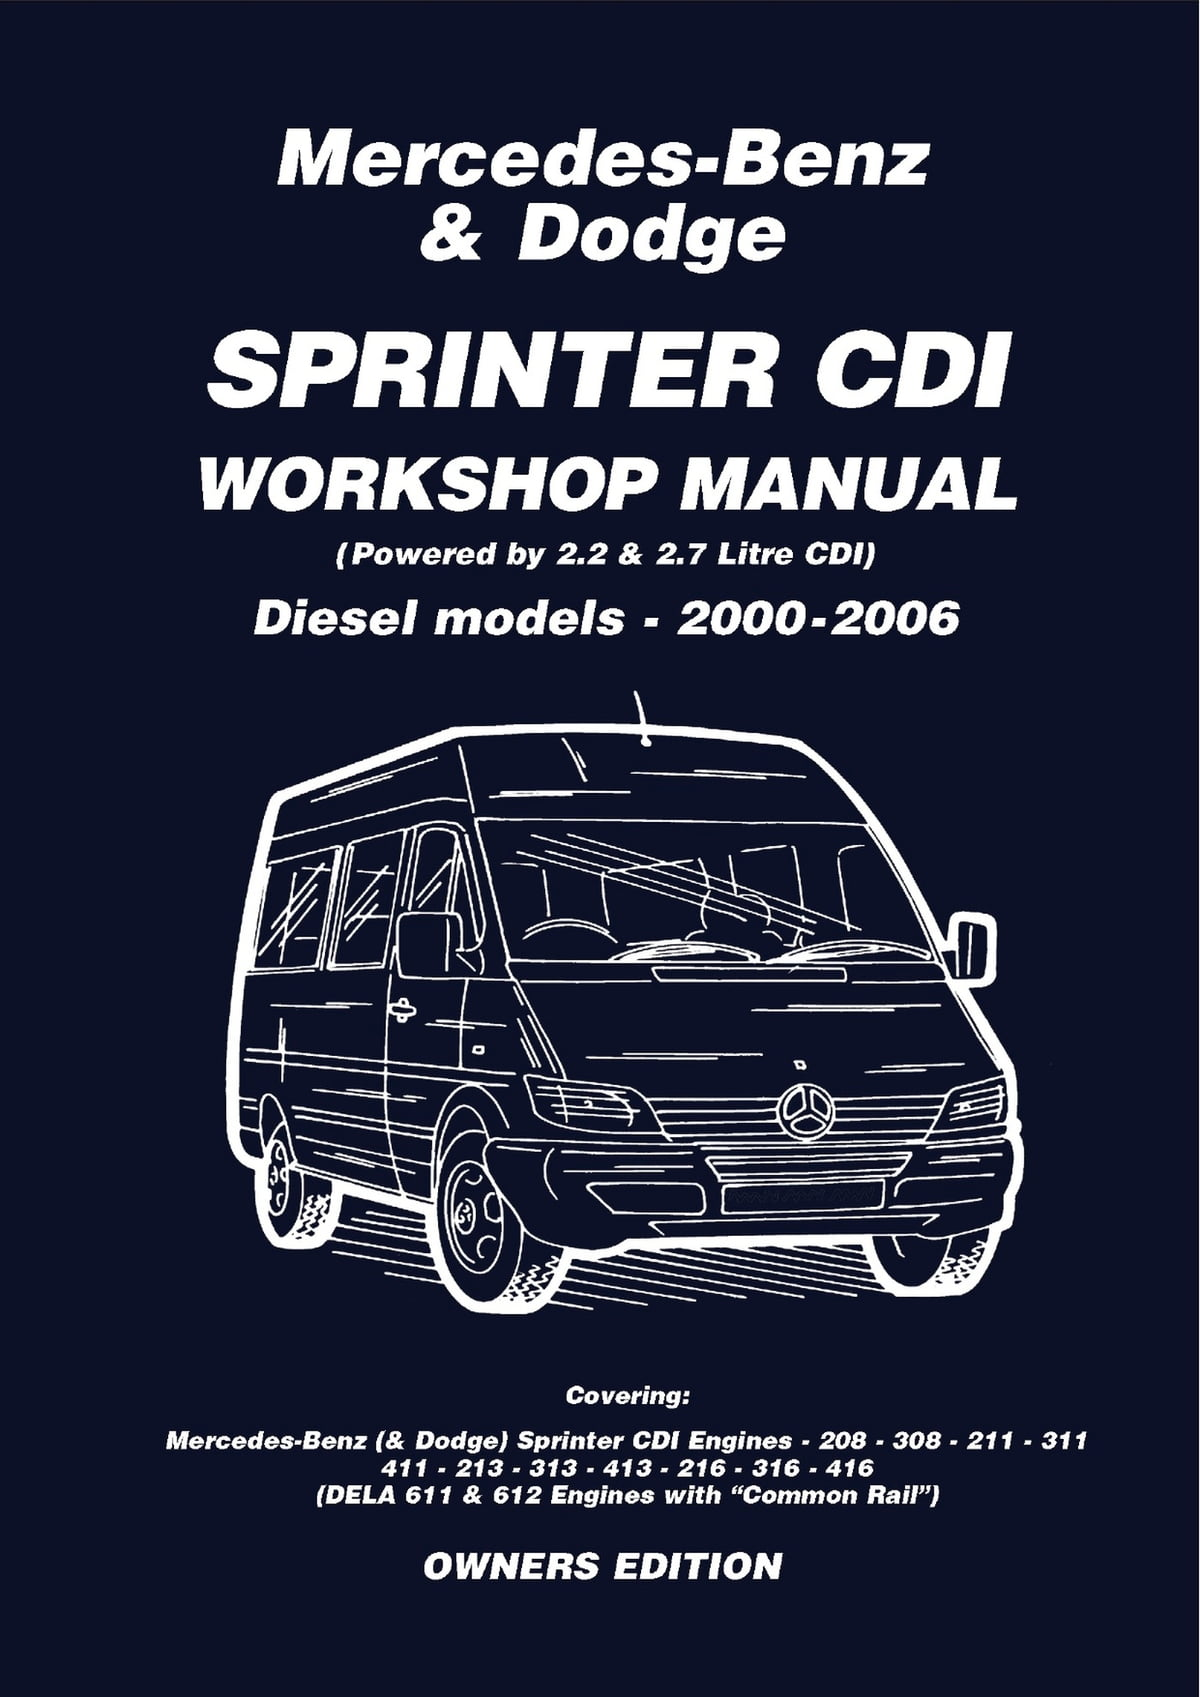 Mercedes Benz & Dodge Sprinter CDI 2000-2006 Owners Workshop Manual eBook  by Various Various - 9781855209718 | Rakuten Kobo